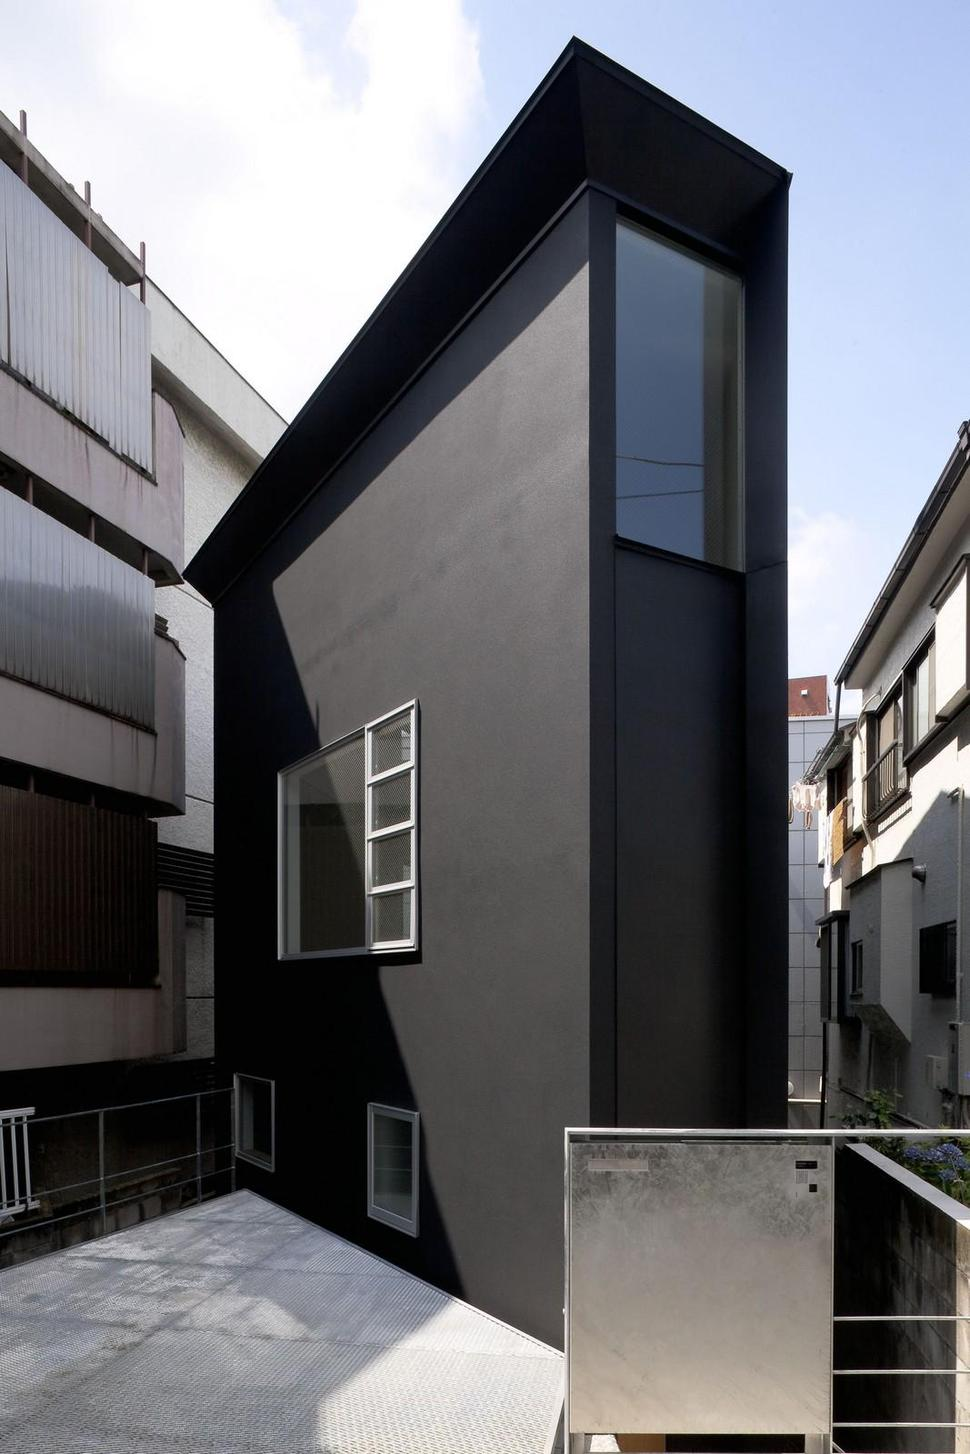 Extremely Narrow House on houses in tokyo japan, narrow house interior design, small apartment building in japan, micro houses in japan, tall skinny building in japan,